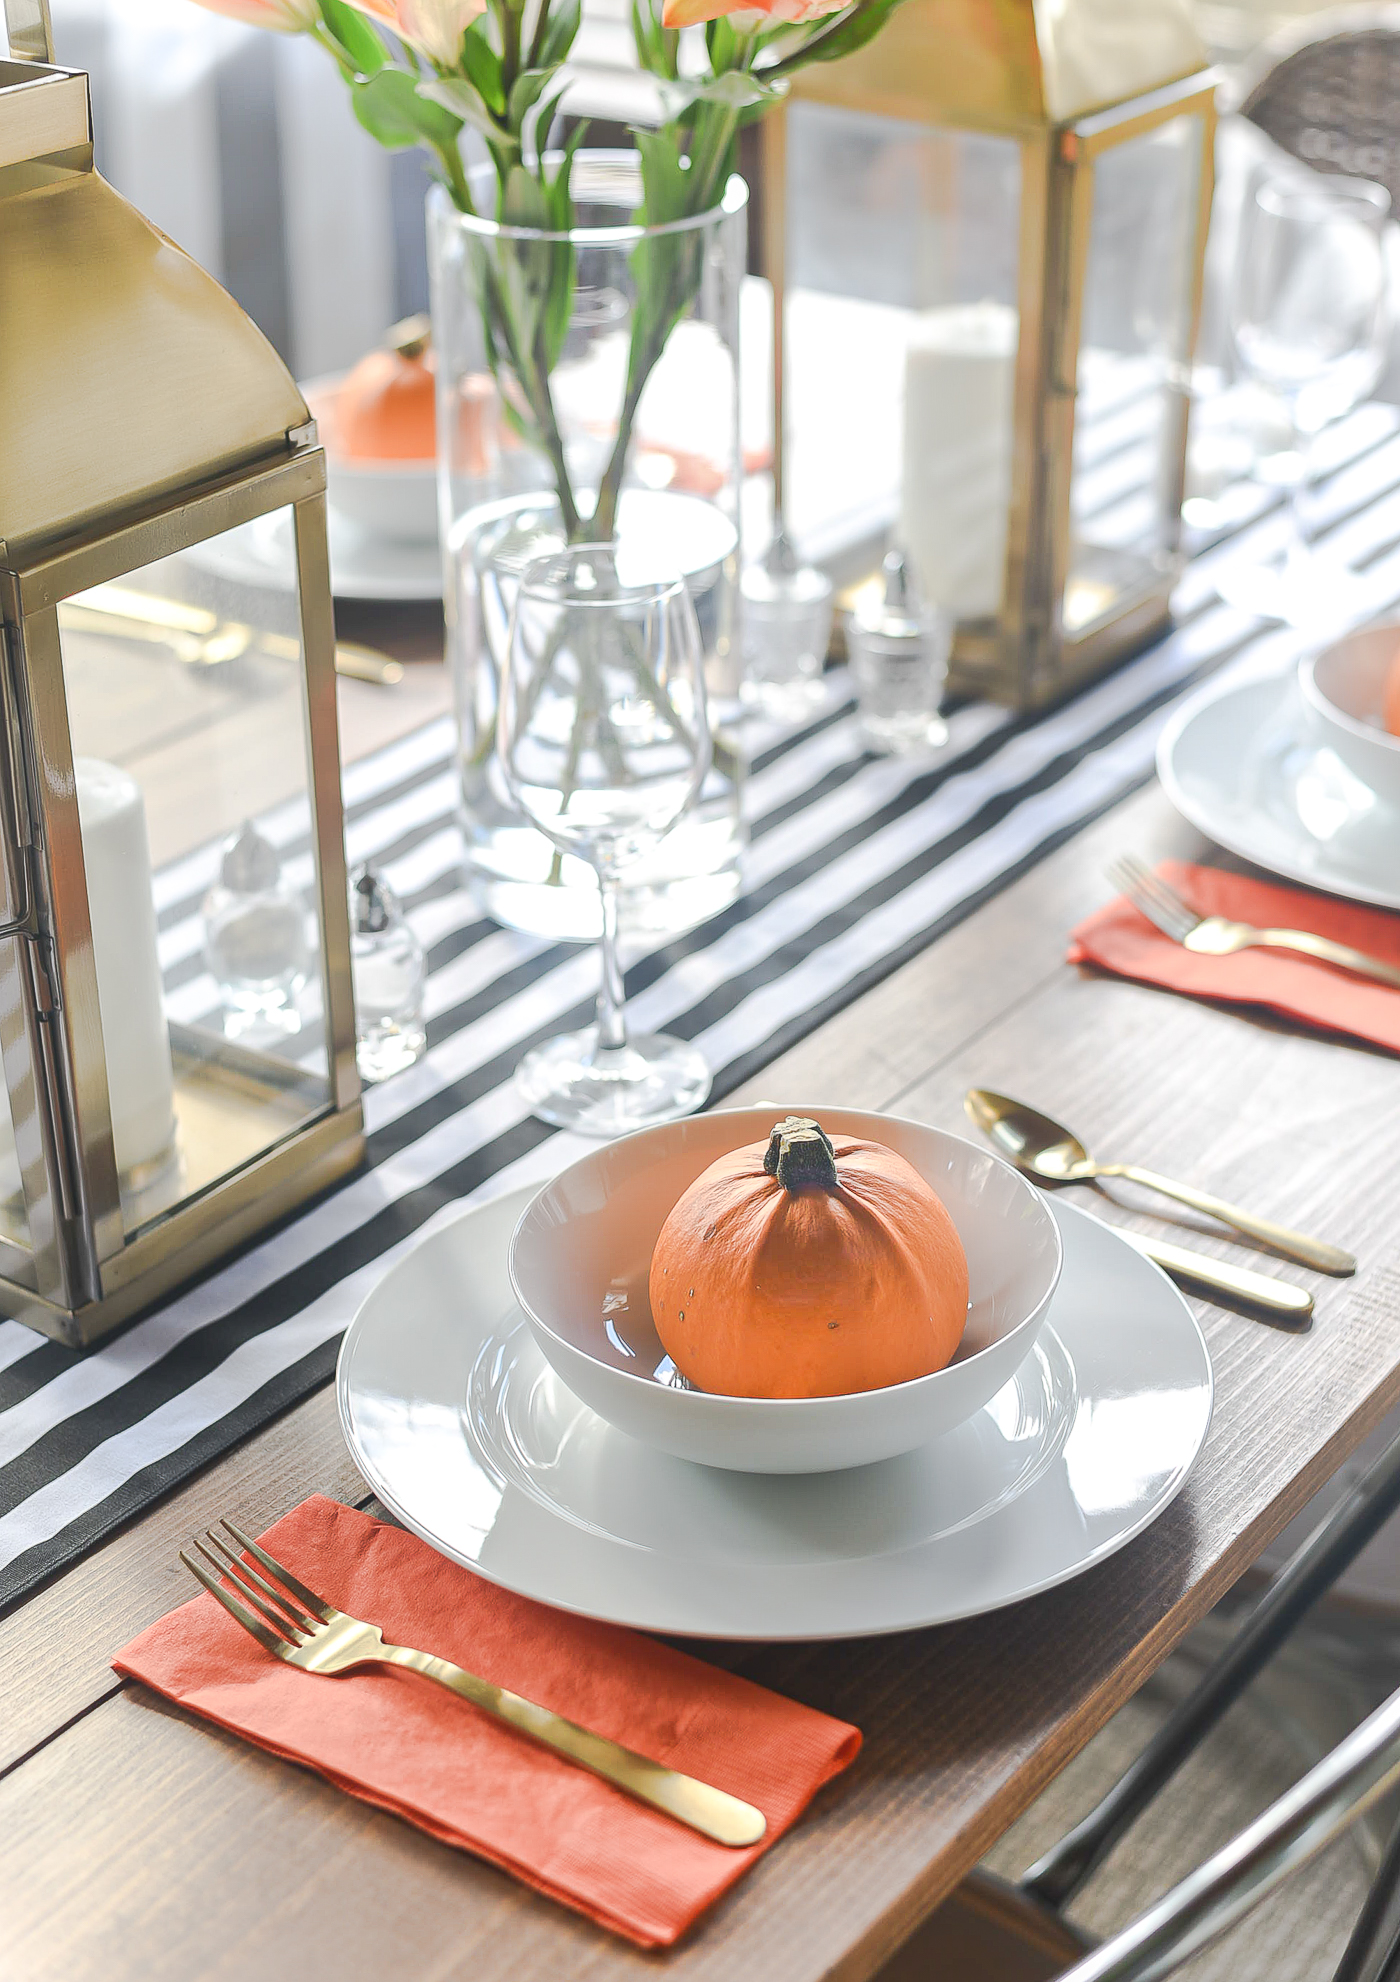 Fall Table Setting in Orange, Black & White - Black White Striped Table Runner - Pumpkins, Orange Napkins, White Plates, Gold Flatware